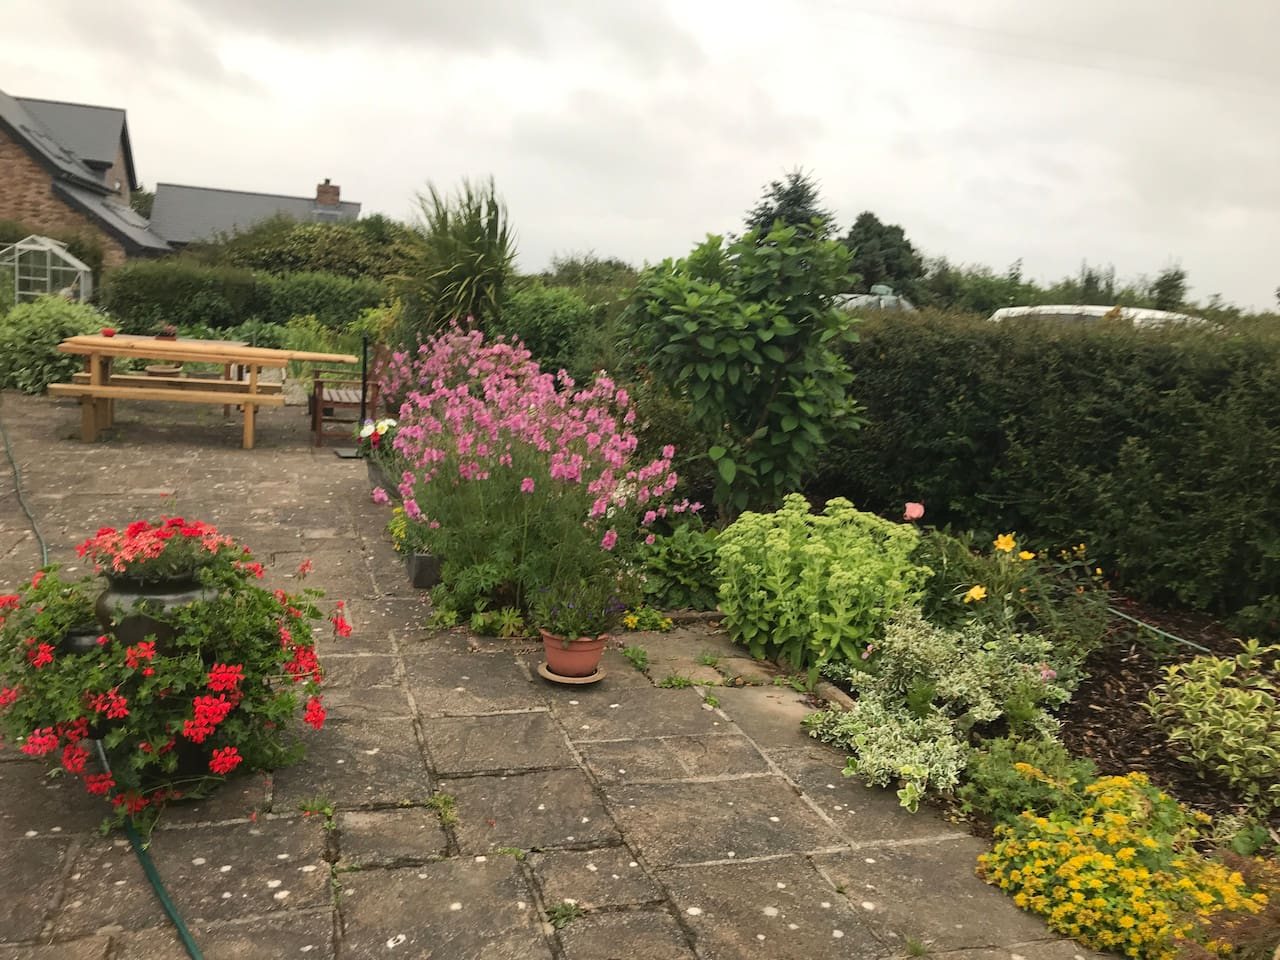 The garden has tables and benches and is a space guests can use, weather permitting.